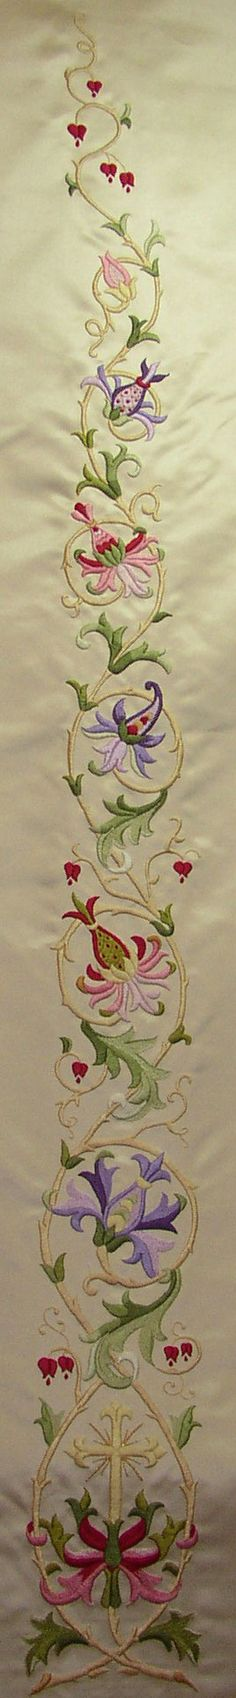 Silk on Silk, Satin Stitch – Complete Stole – Needle'nThread.com - for closer look at the flowers, click here:  http://www.needlenthread.com/2006/10/silk-on-silk-satin-stitch.html